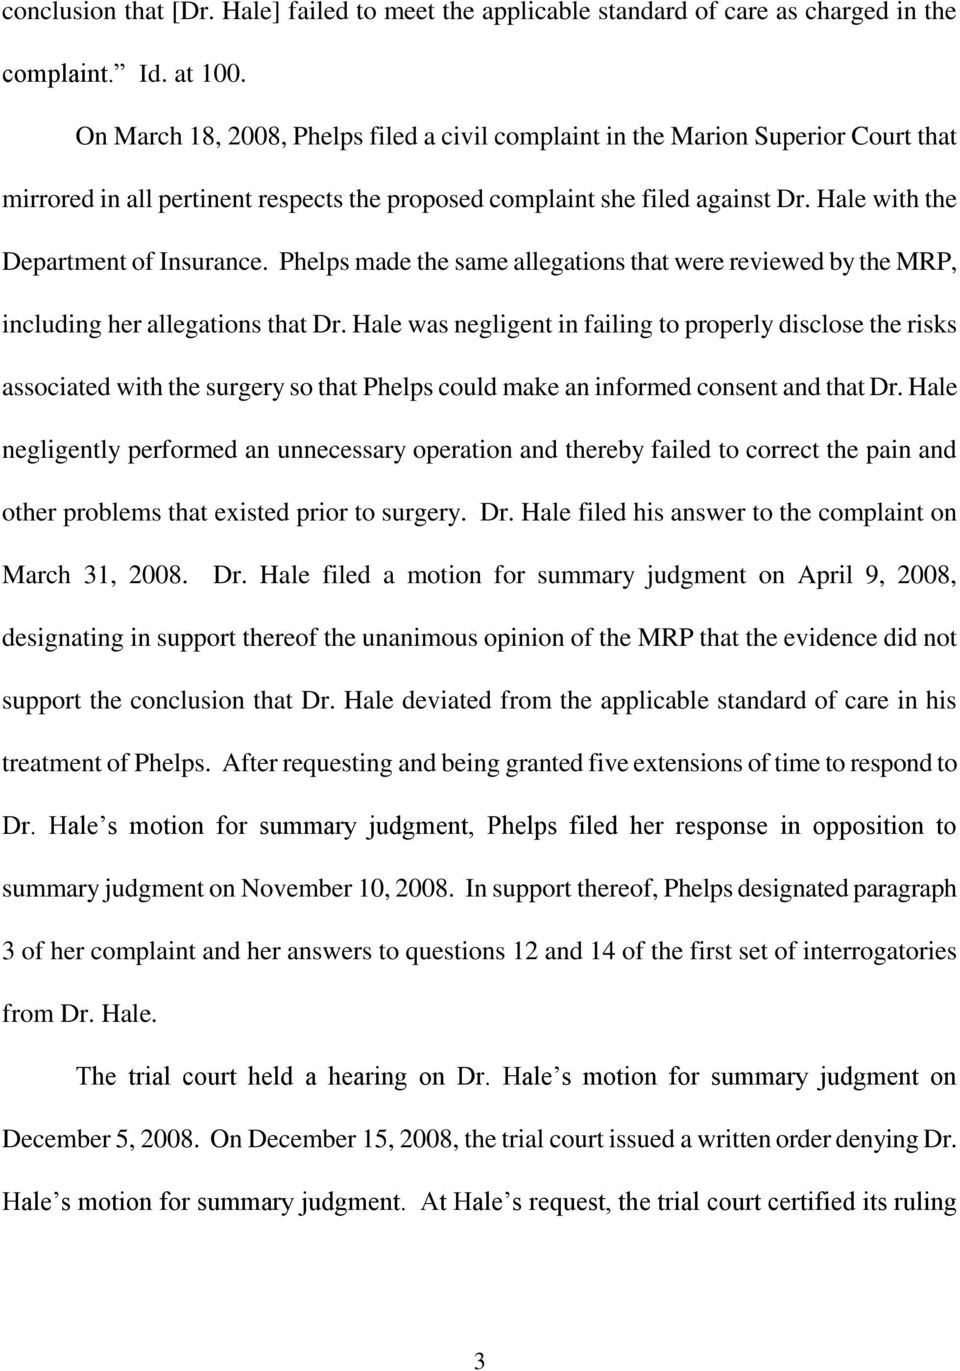 Hale with the Department of Insurance. Phelps made the same allegations that were reviewed by the MRP, including her allegations that Dr.